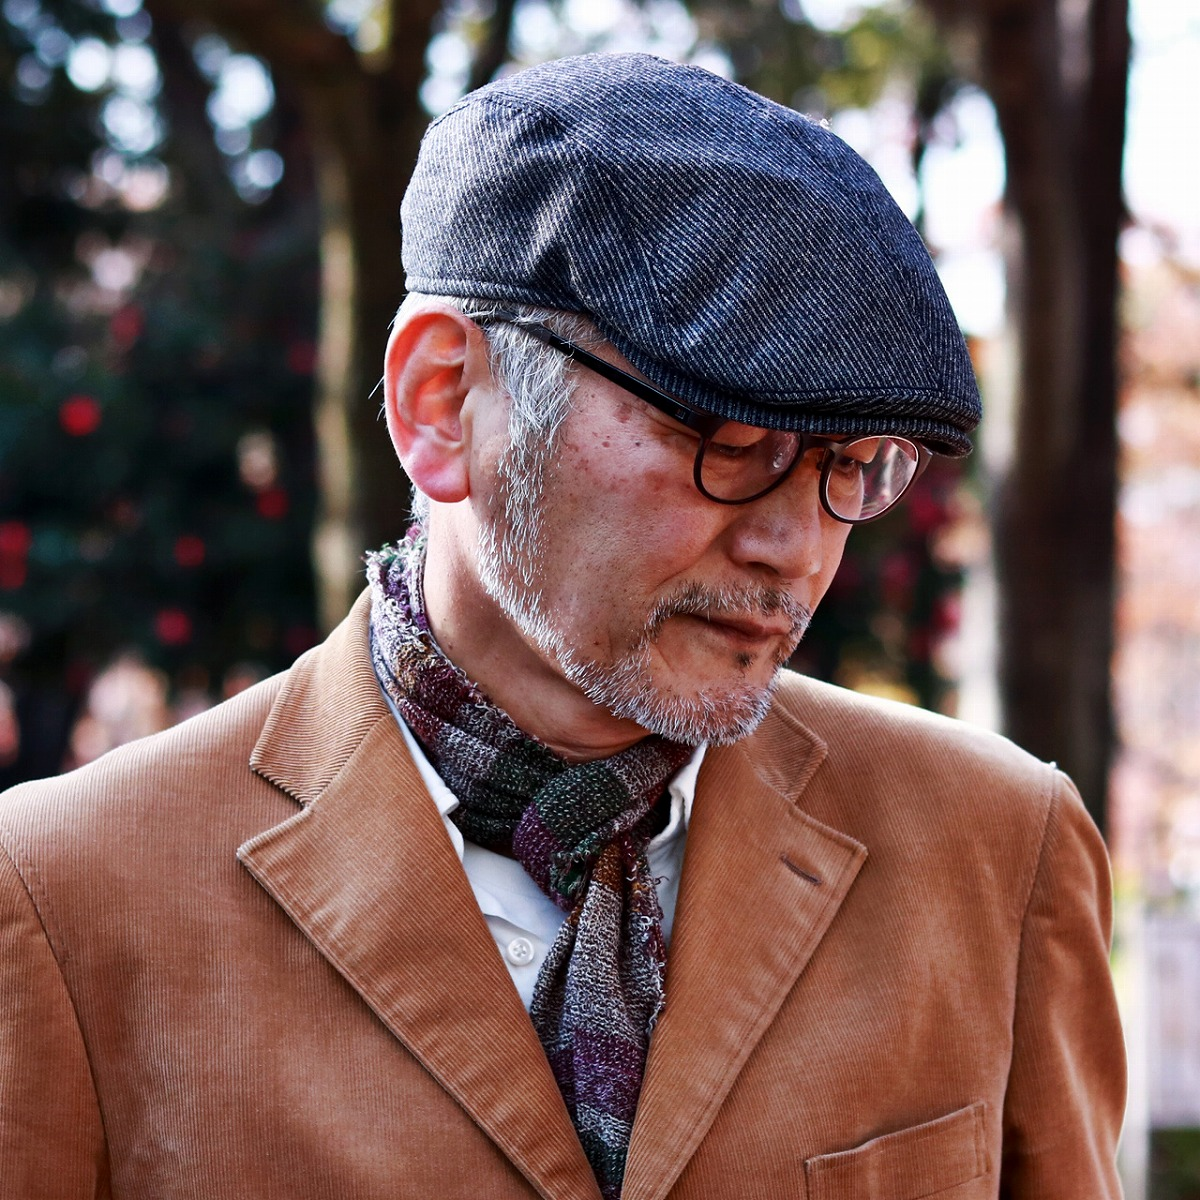 15c91d43cd2e6 ... Gottmann サイズゴットマン hat cold protection men dark gray (Christmas gift  packing lapping free of